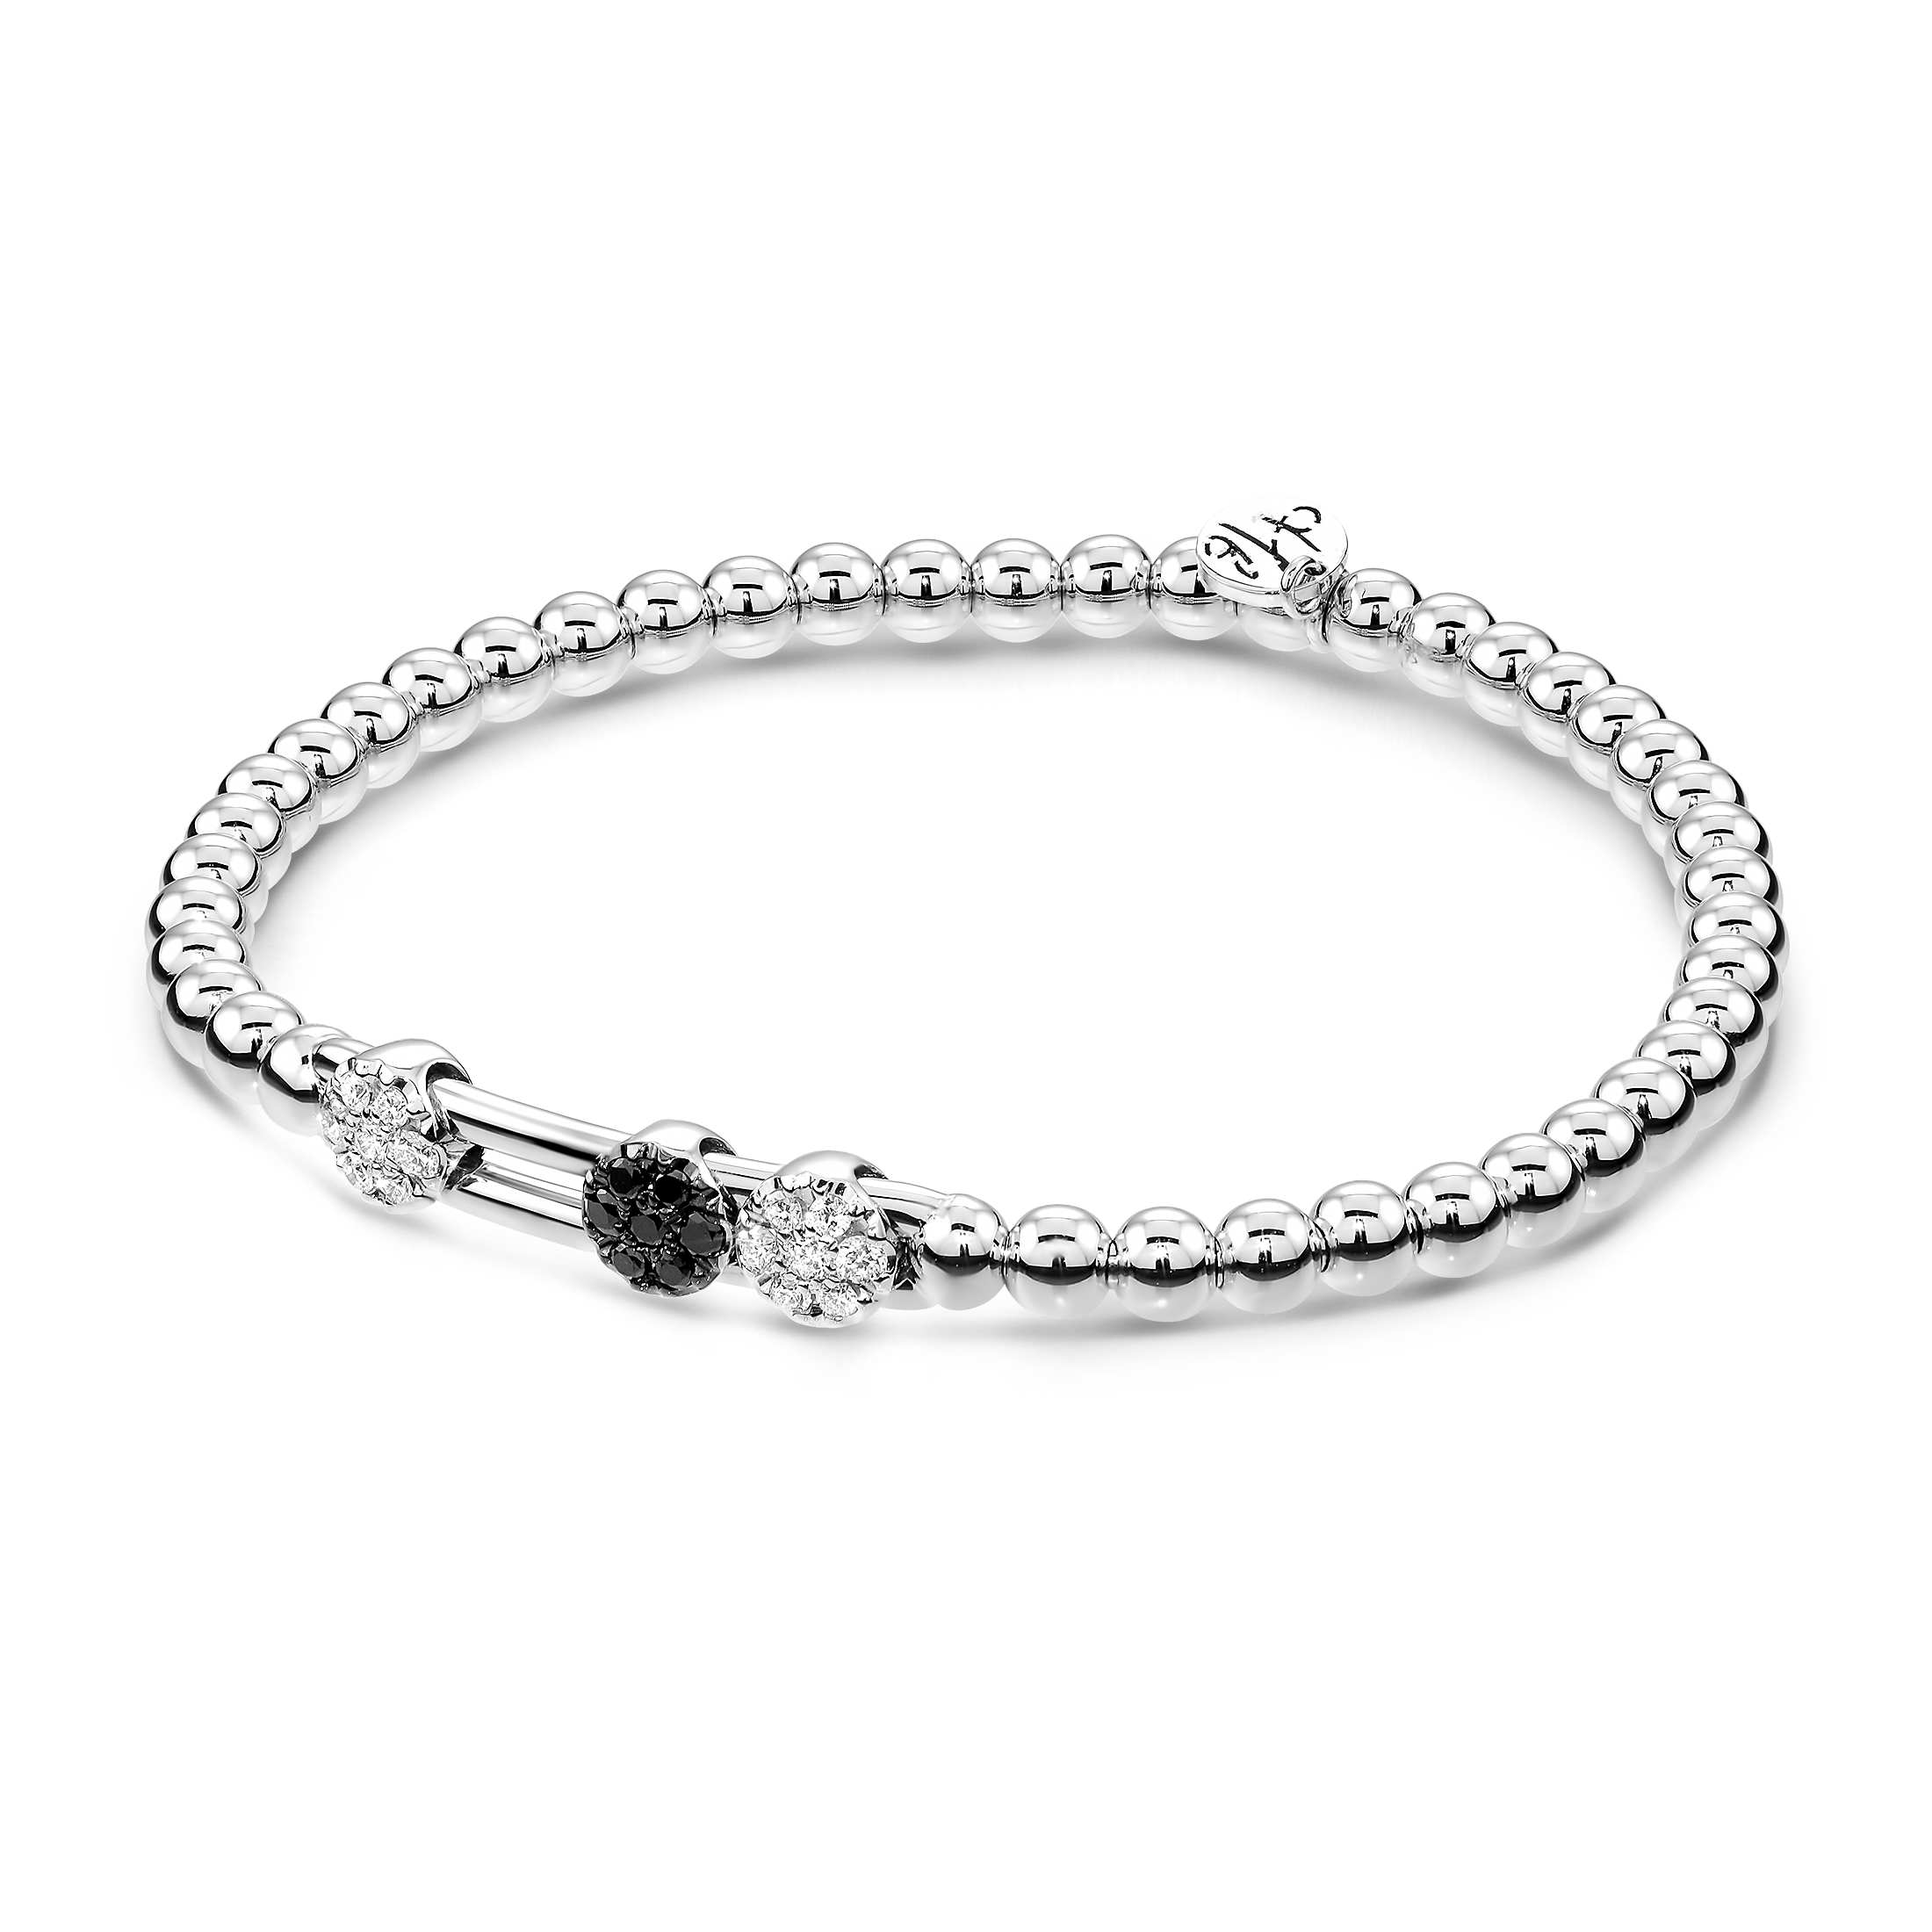 Tips to buy diamond bangle bracelets